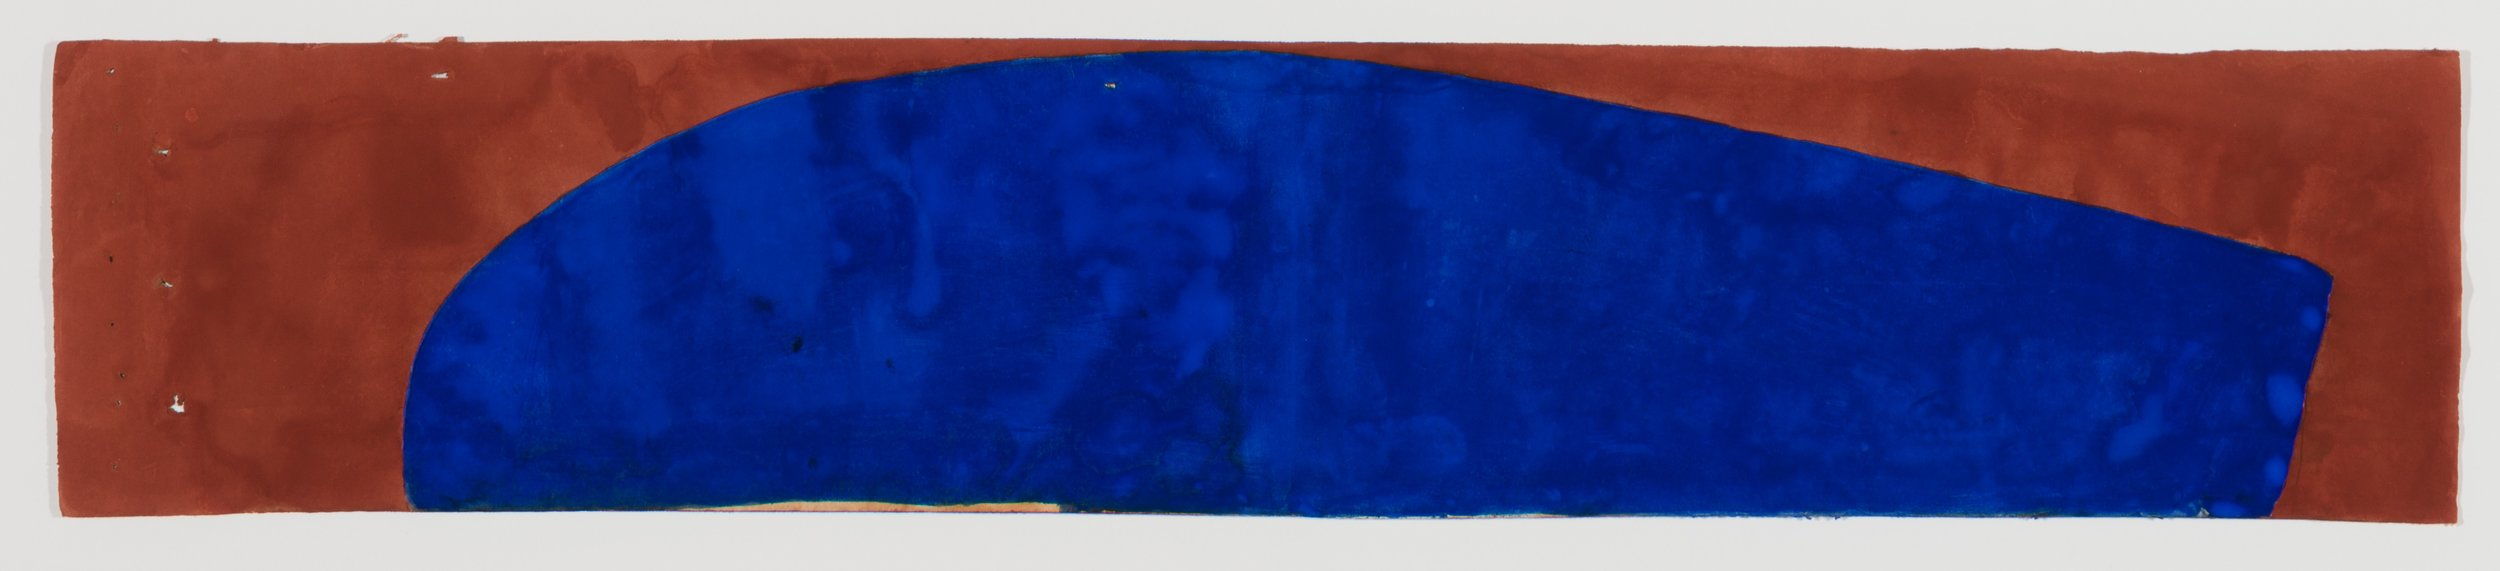 Suzan Frecon,  ultraturqterras , 2016, Watercolor on agate-burnished old Indian ledger paper, 5 1/4 x 26 3/4 inches, SFR1601  Lawrence Markey Inc.  2/6